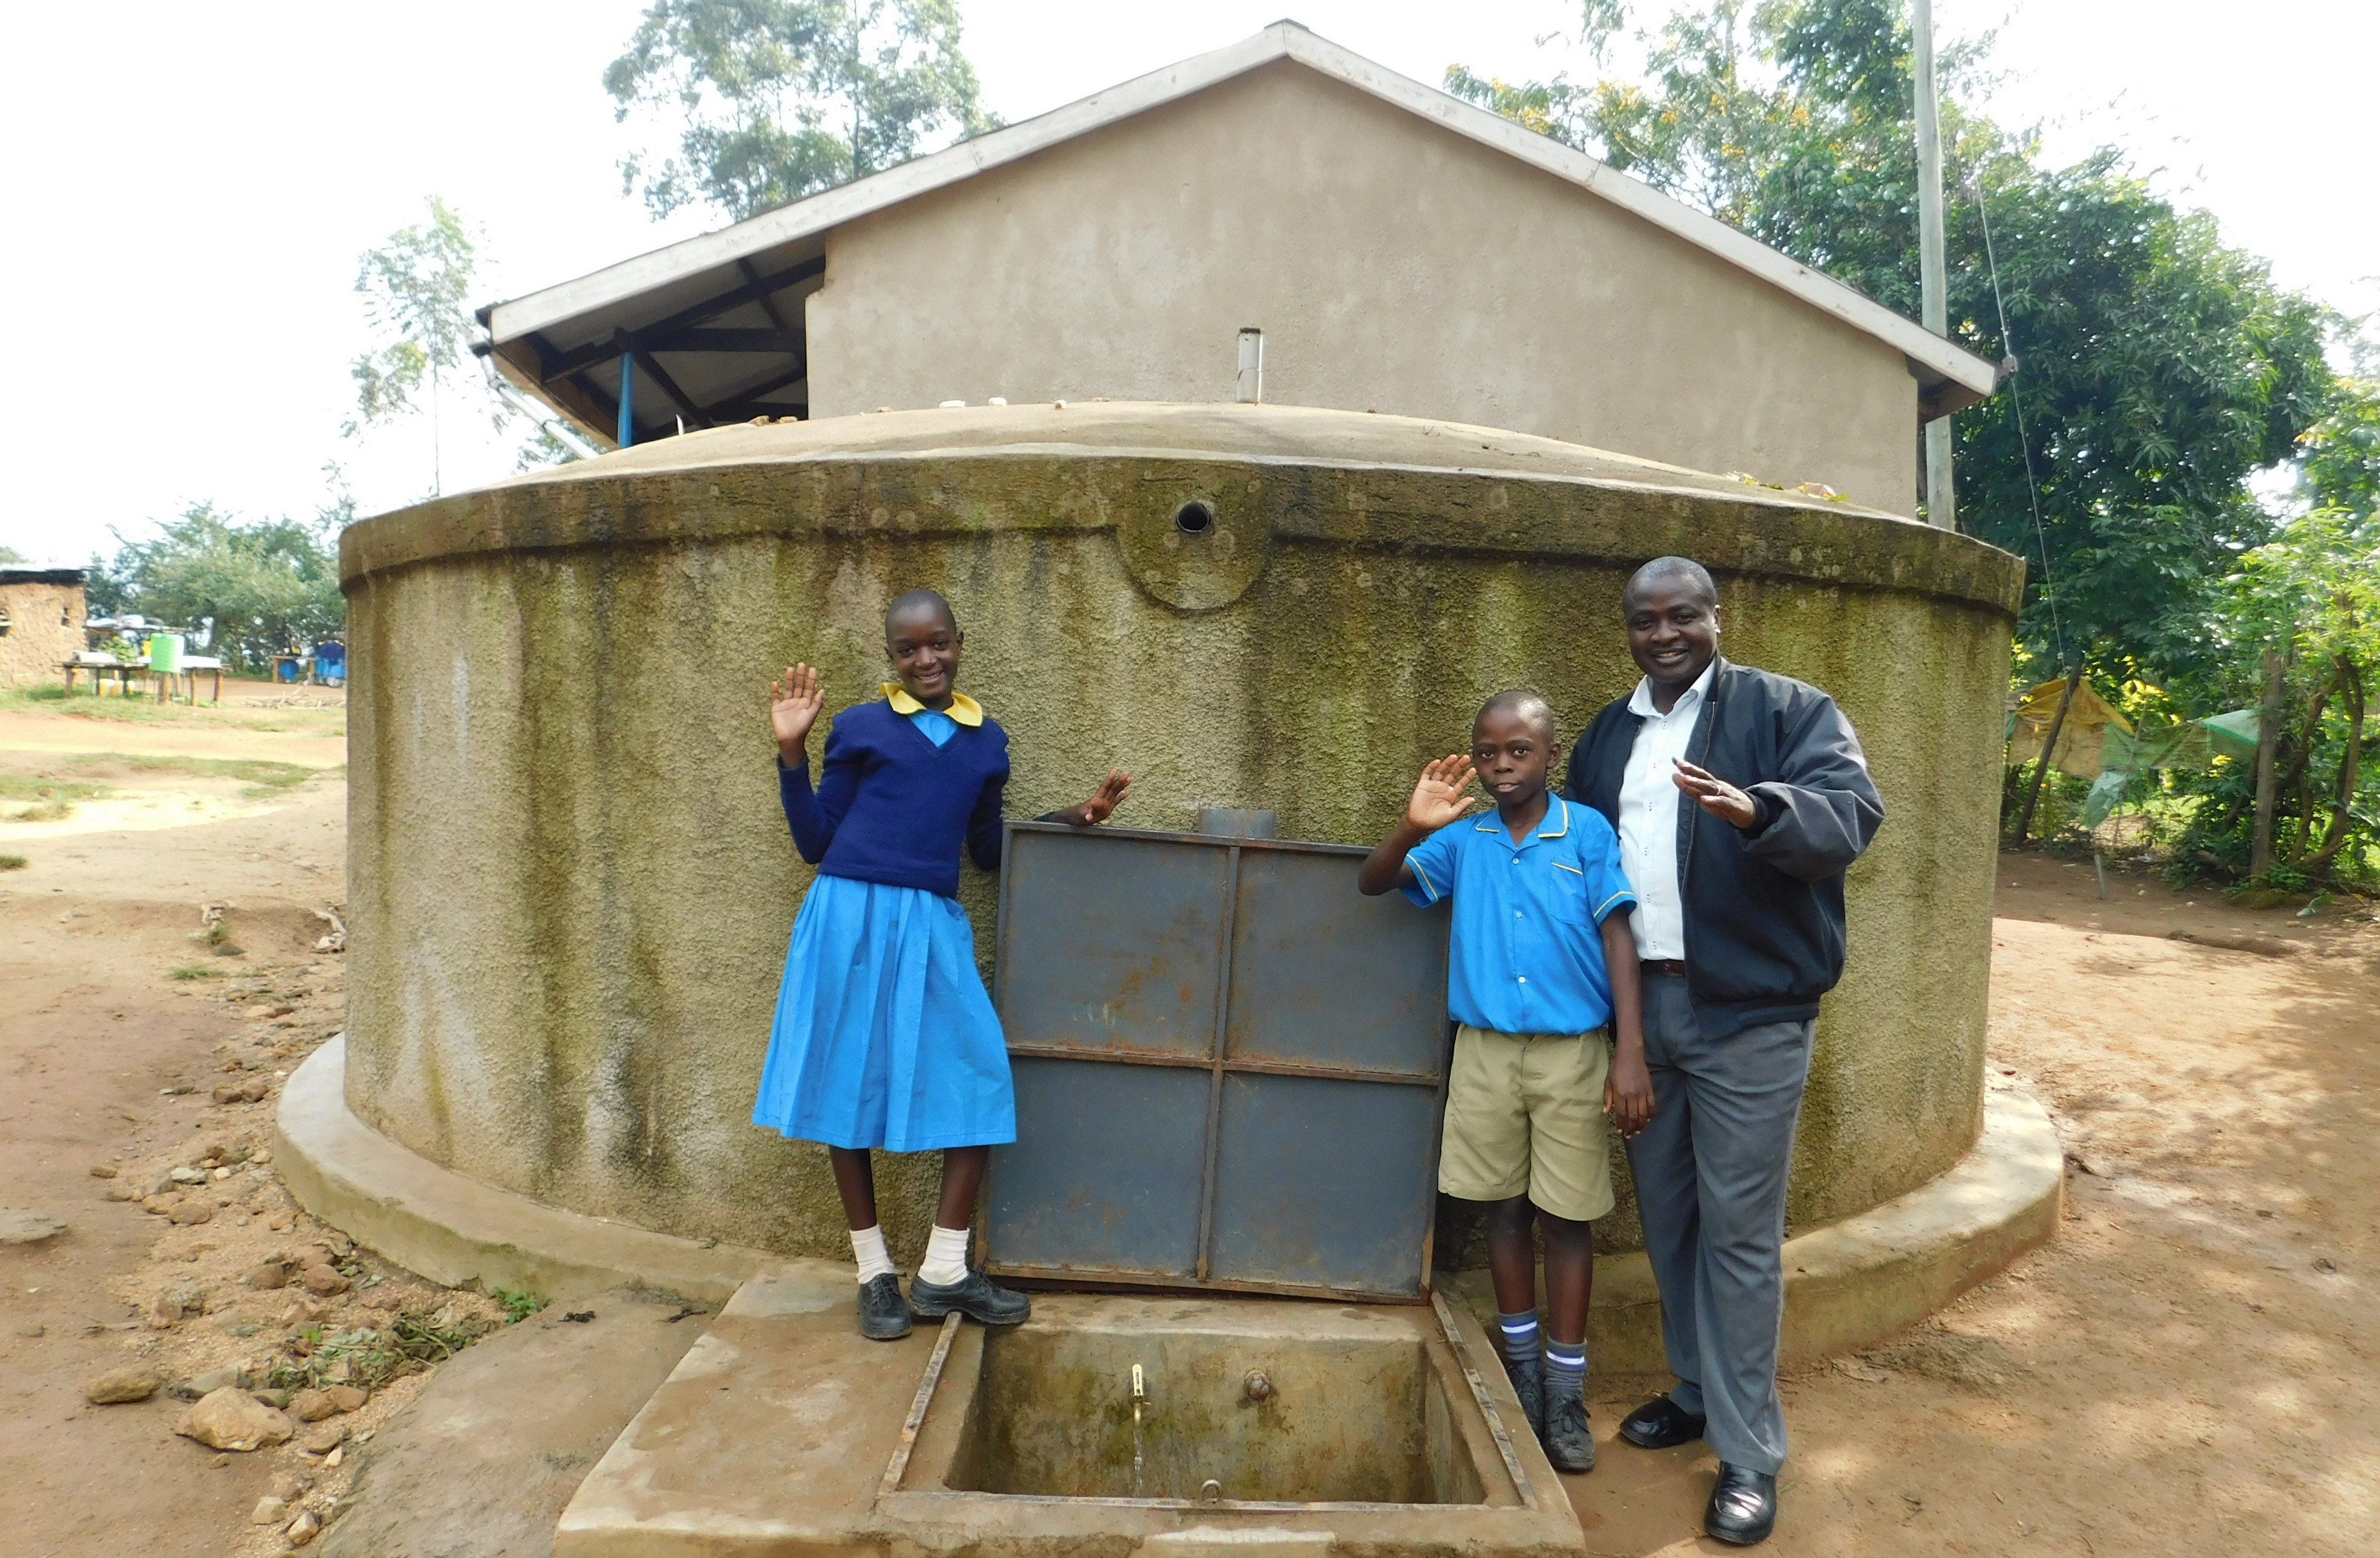 The Water Project : 3-kenya18076-mr-imbenzi-with-students-at-the-rain-tank